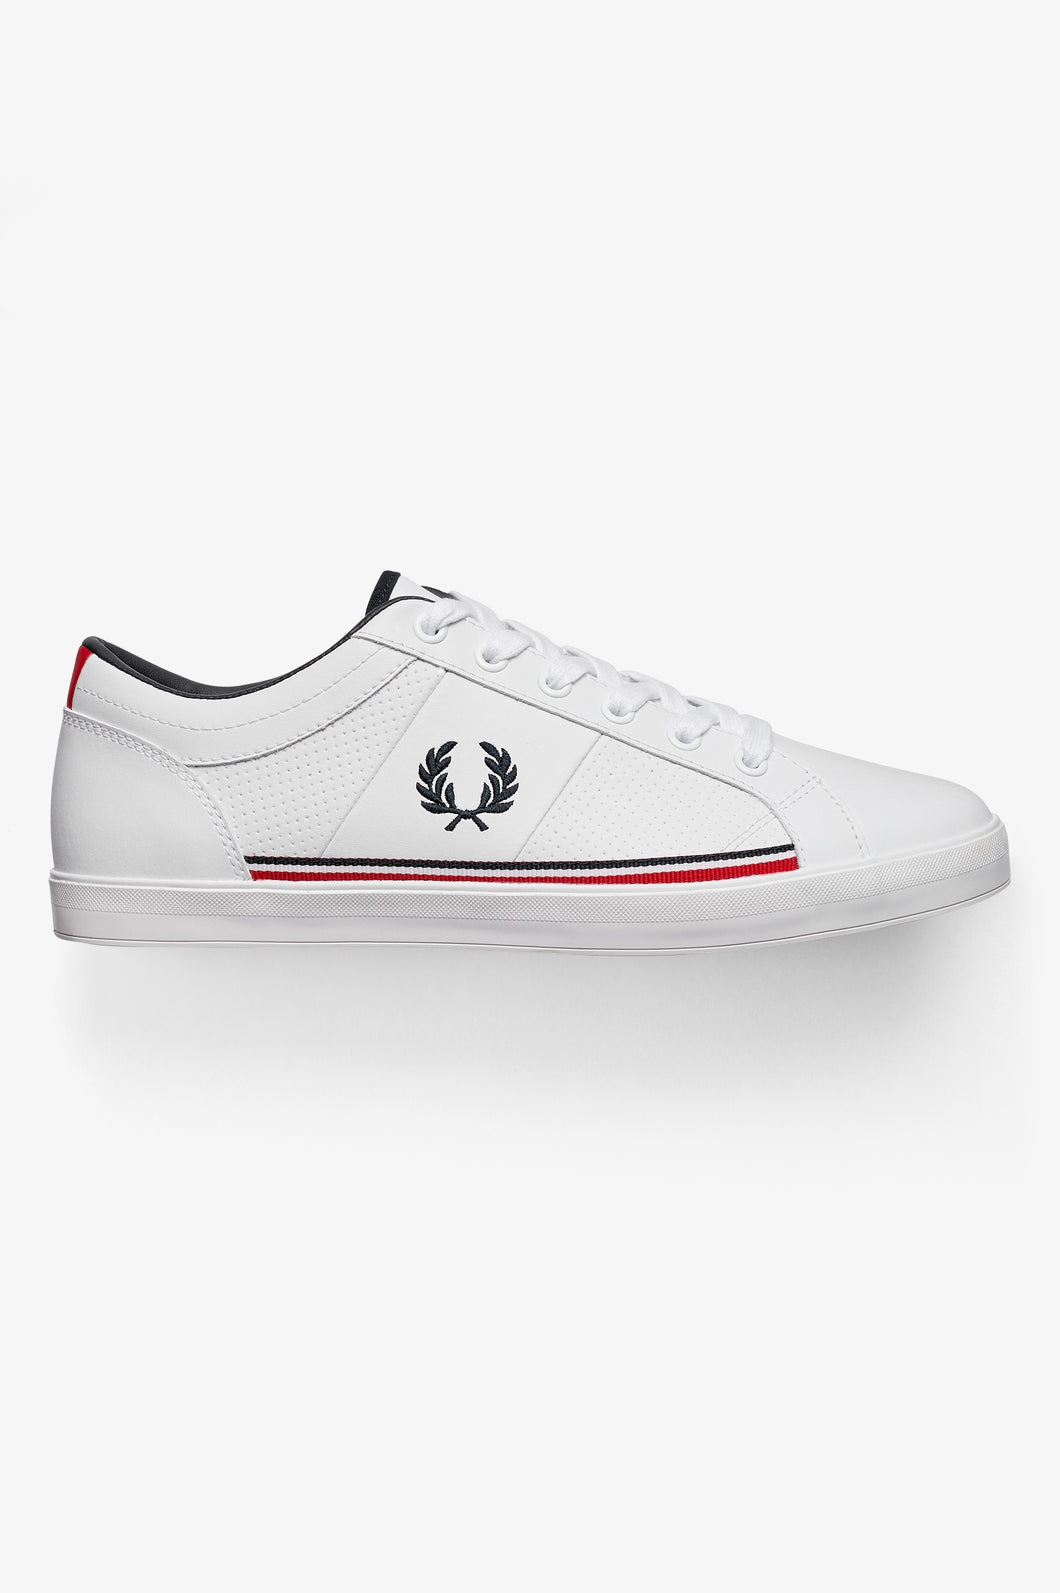 Fred Perry Trainers - Perforated Baseline Leather - White - B7114 - 200